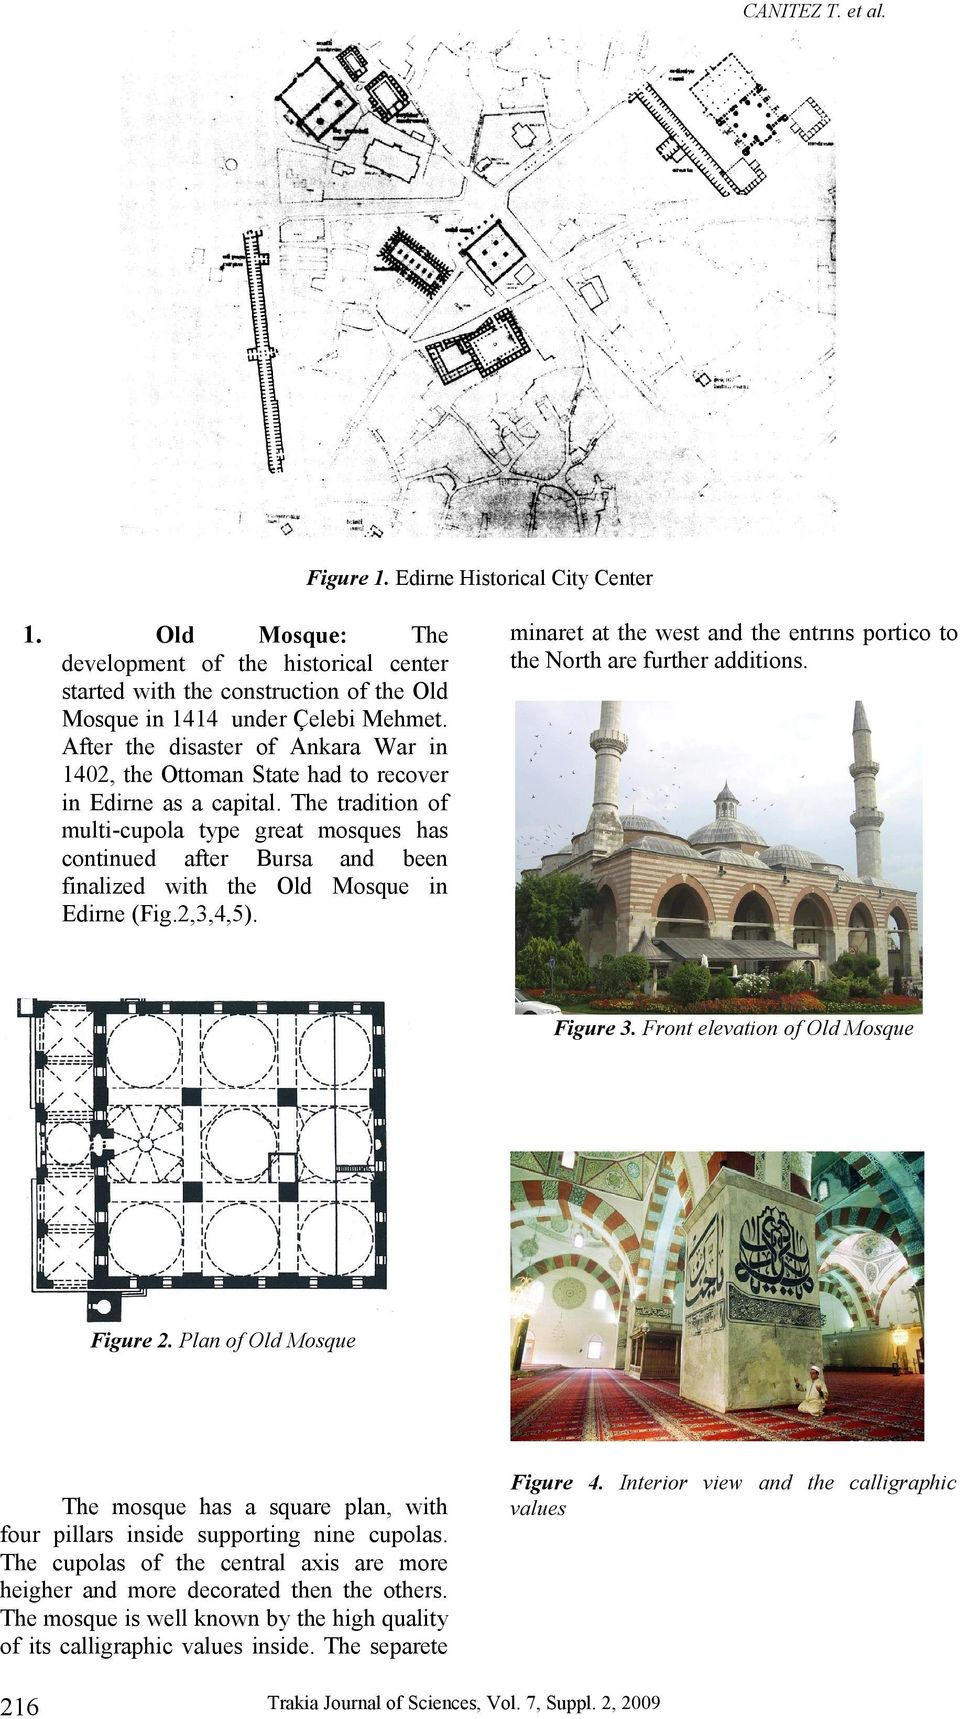 The tradition of multi-cupola type great mosques has continued after Bursa and been finalized with the Old Mosque in Edirne (Fig.2,3,4,5).